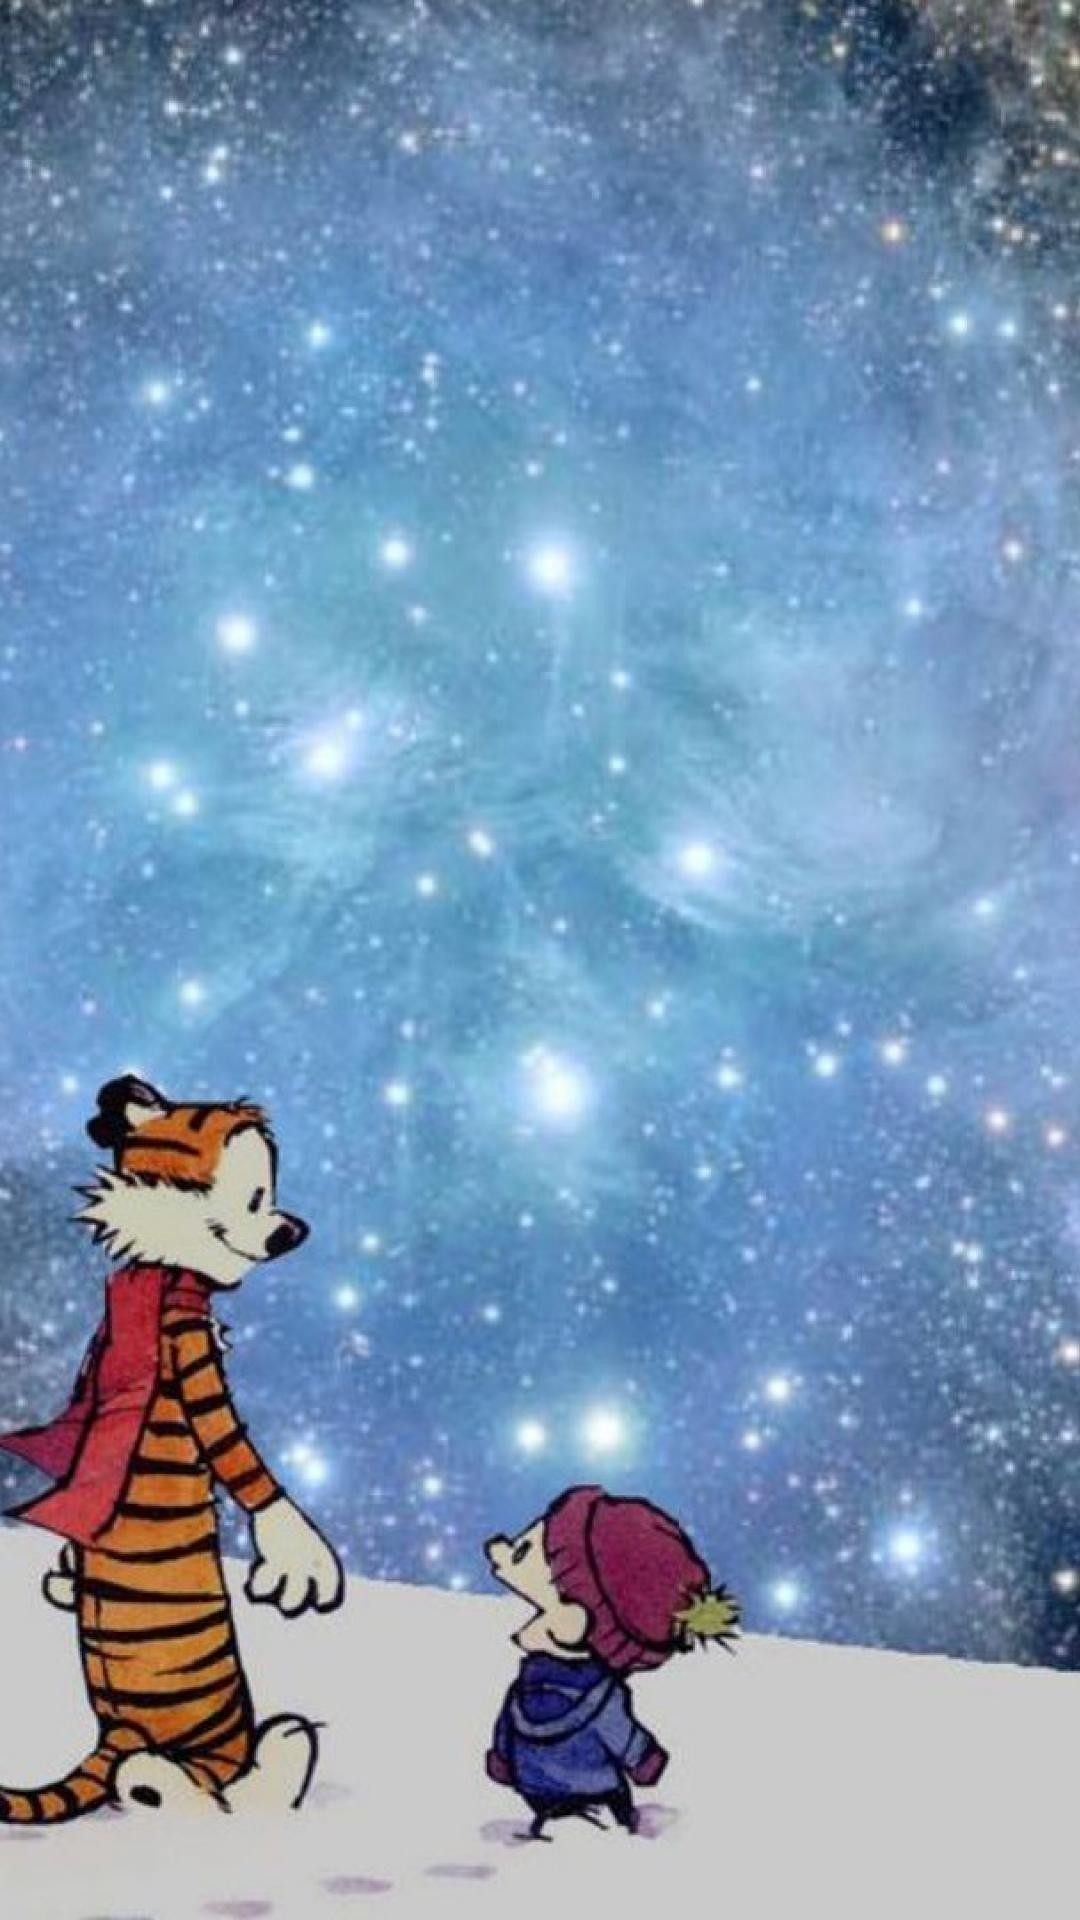 Calvin And Hobbes Iphone Wallpaper 74 Images